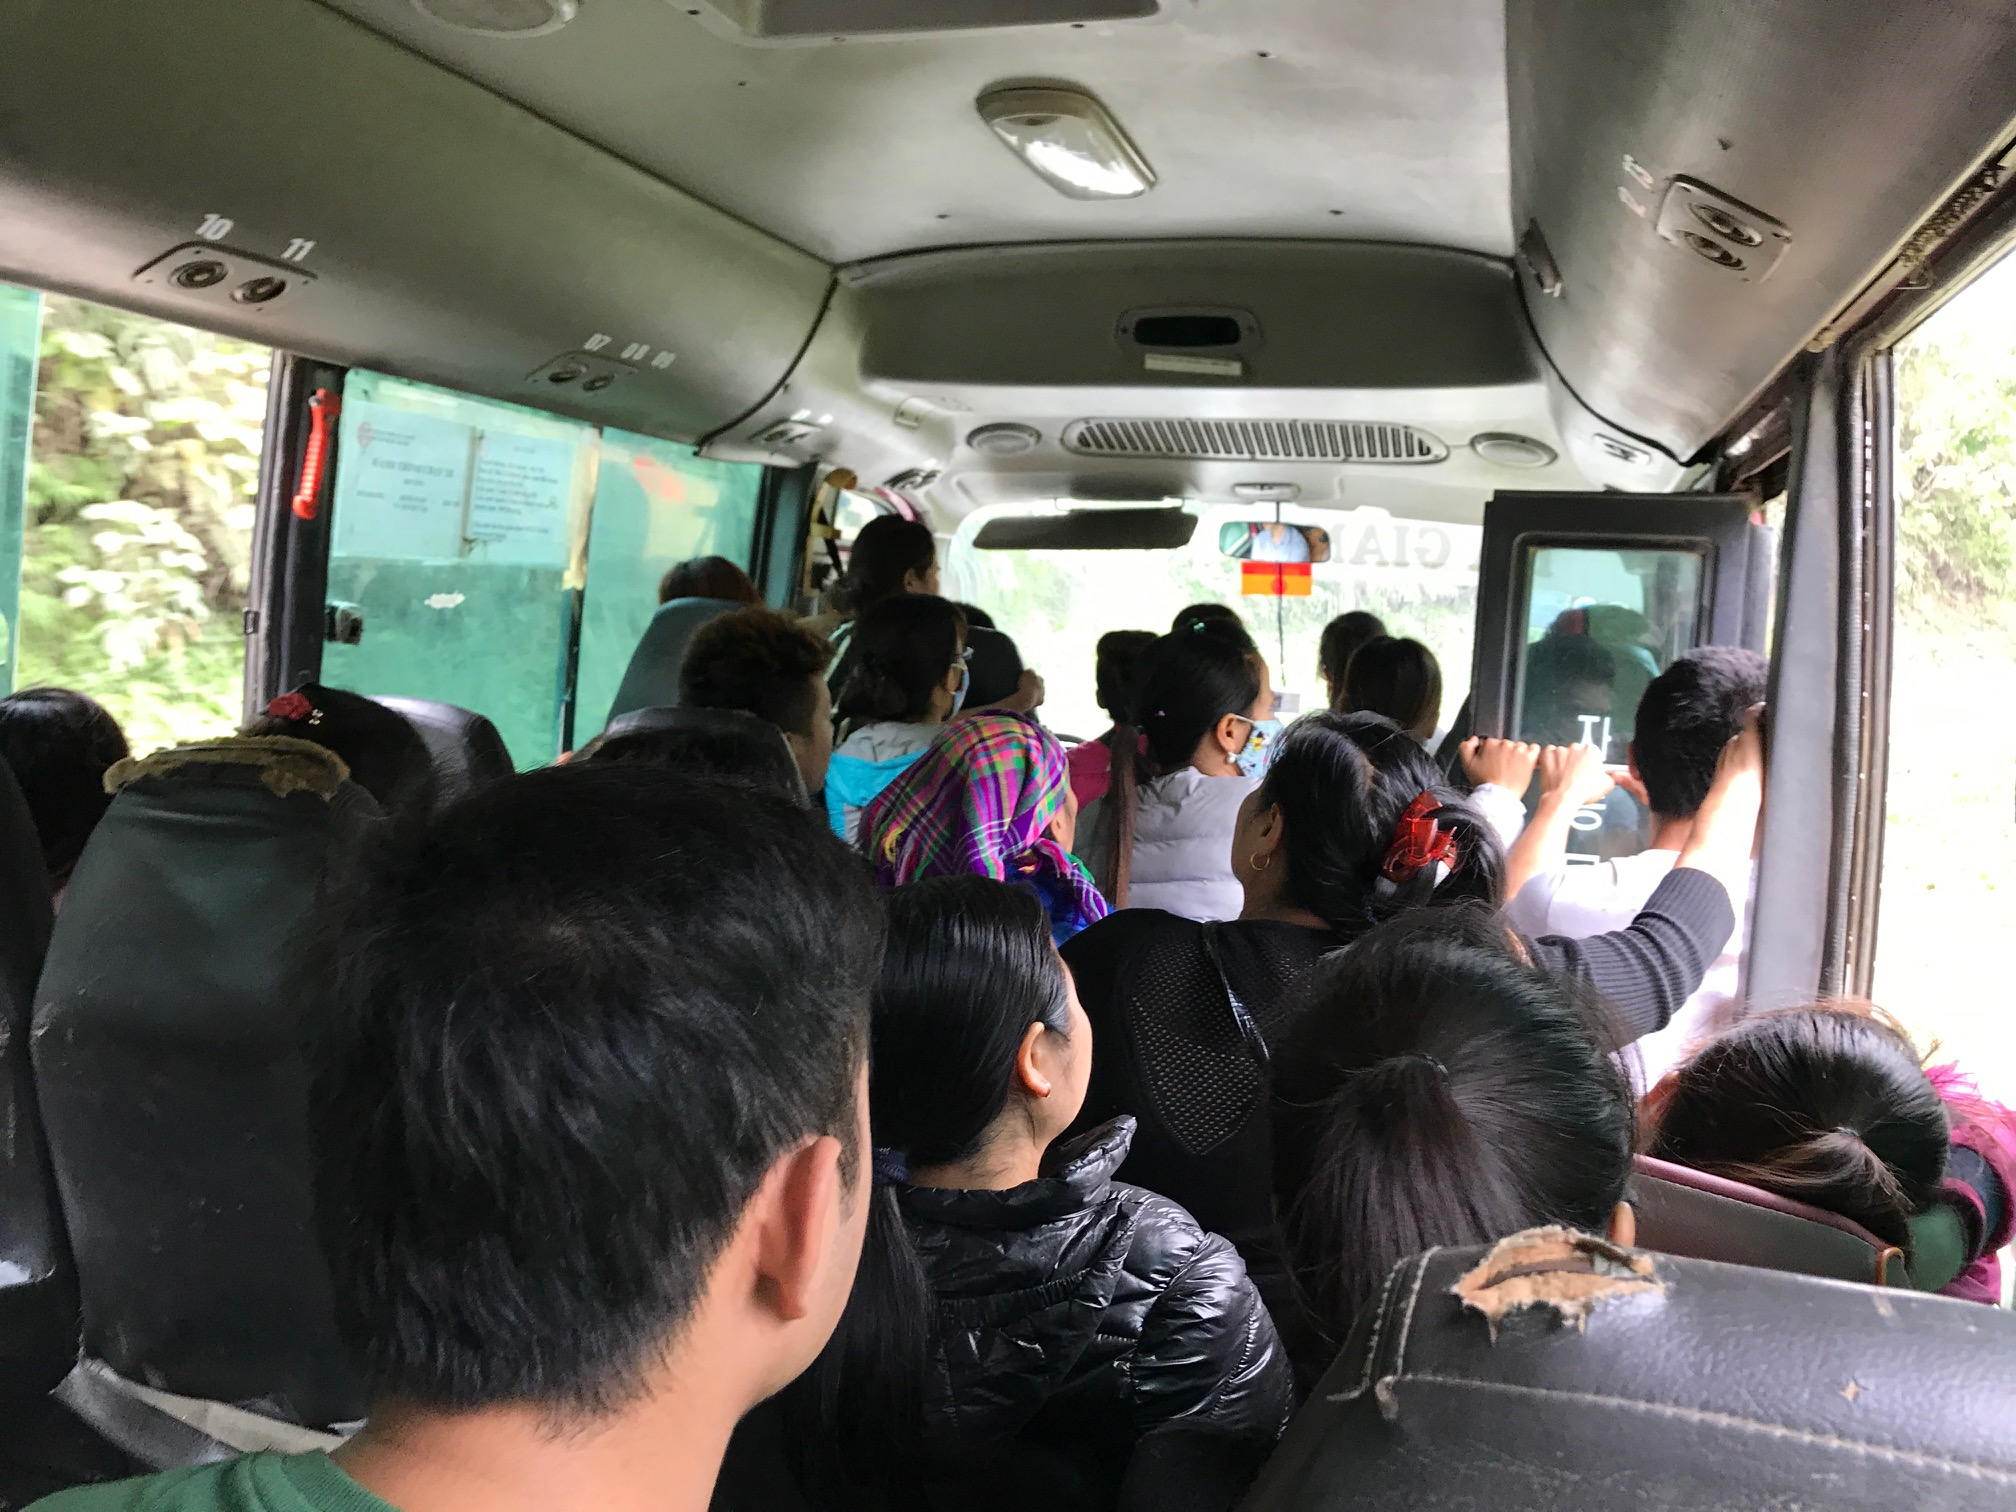 As usual, they packed the bus to the brim.